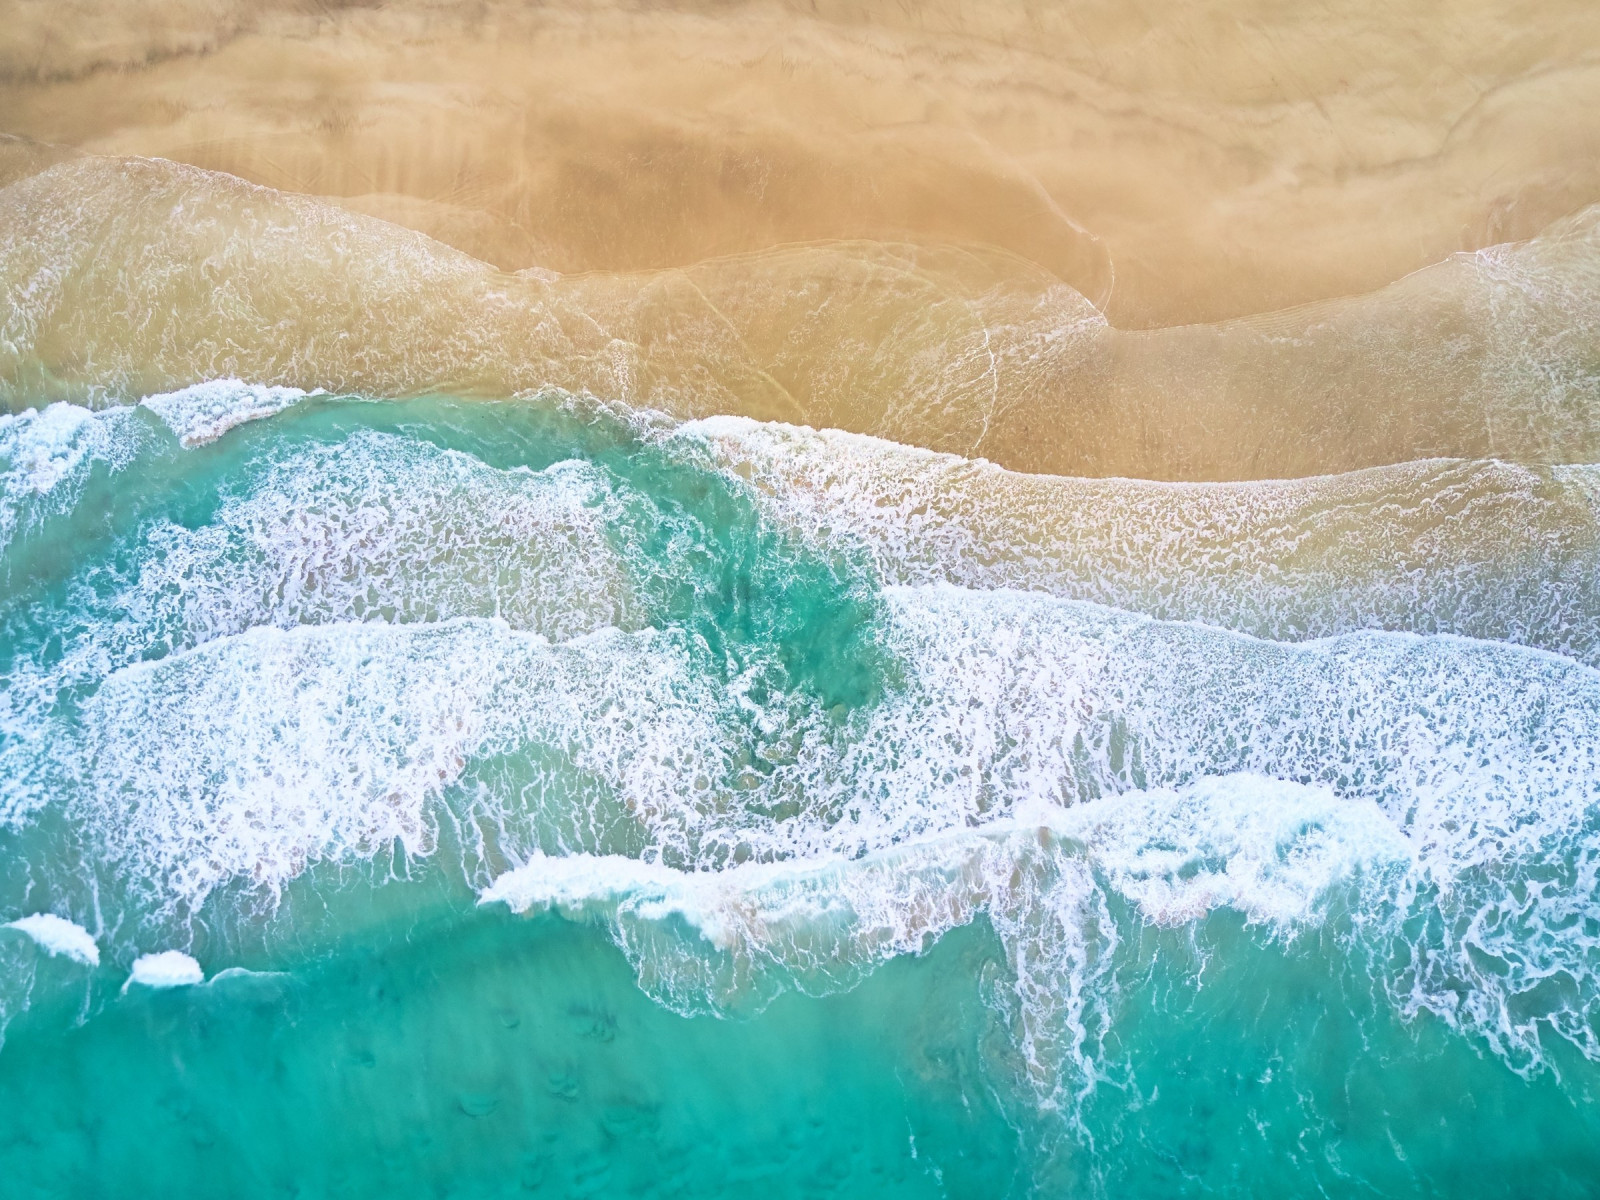 Aerial, waves, beach, Fredvang, Norway wallpaper 1600x1200